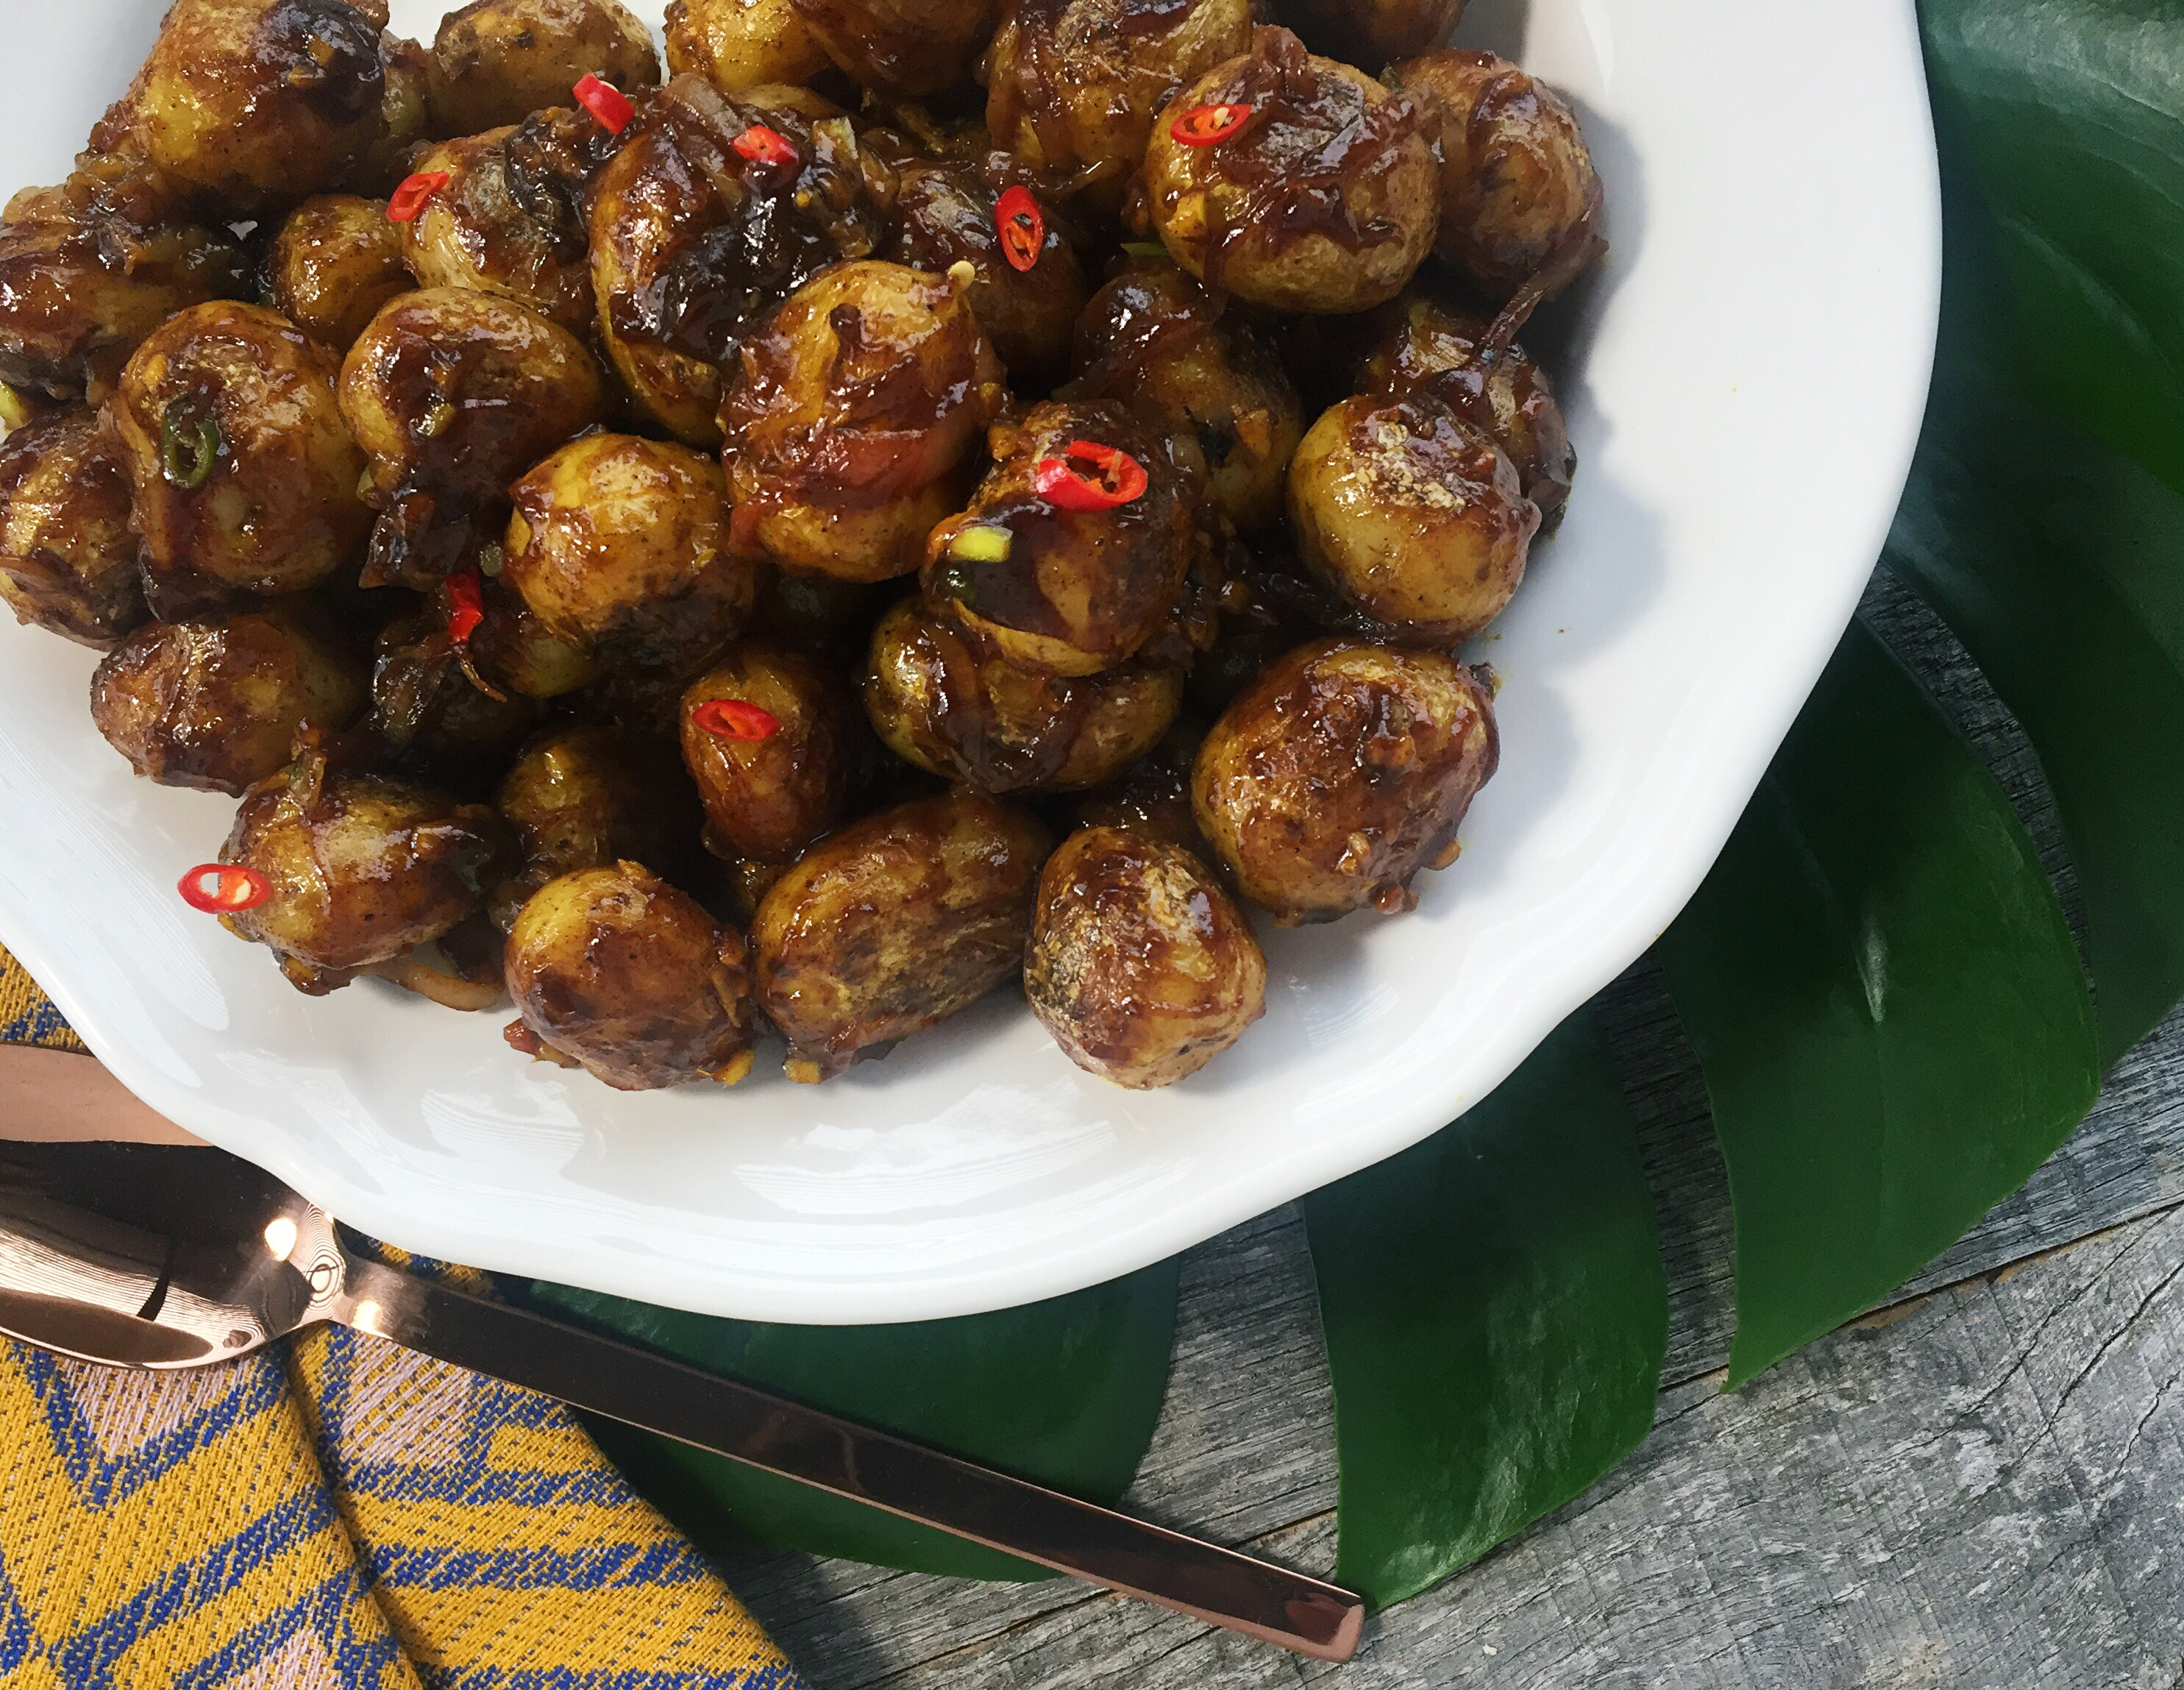 SPICED TAMARIND POTATOES